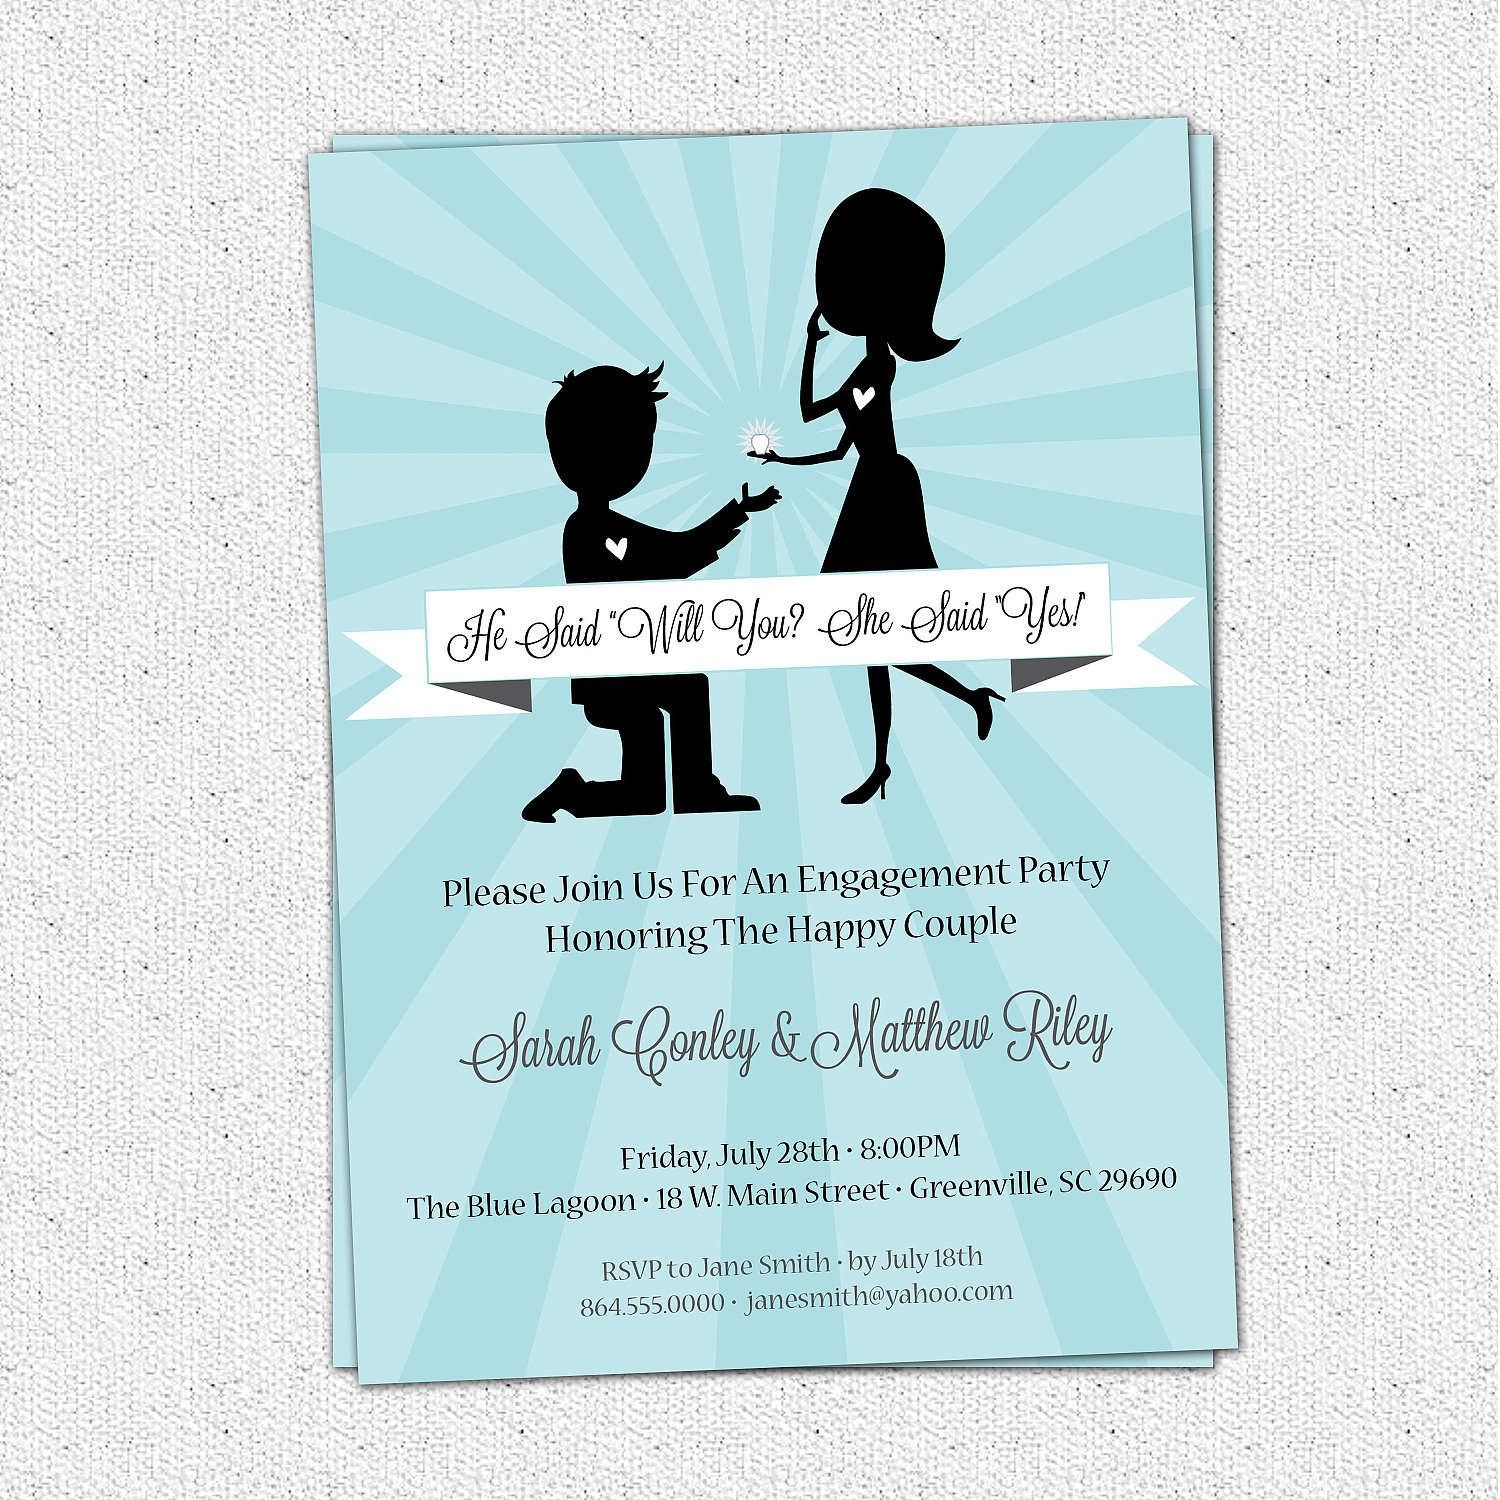 008 Engagement Party Invitations Templates Template Ideas Print At - Free Printable Engagement Party Invitations